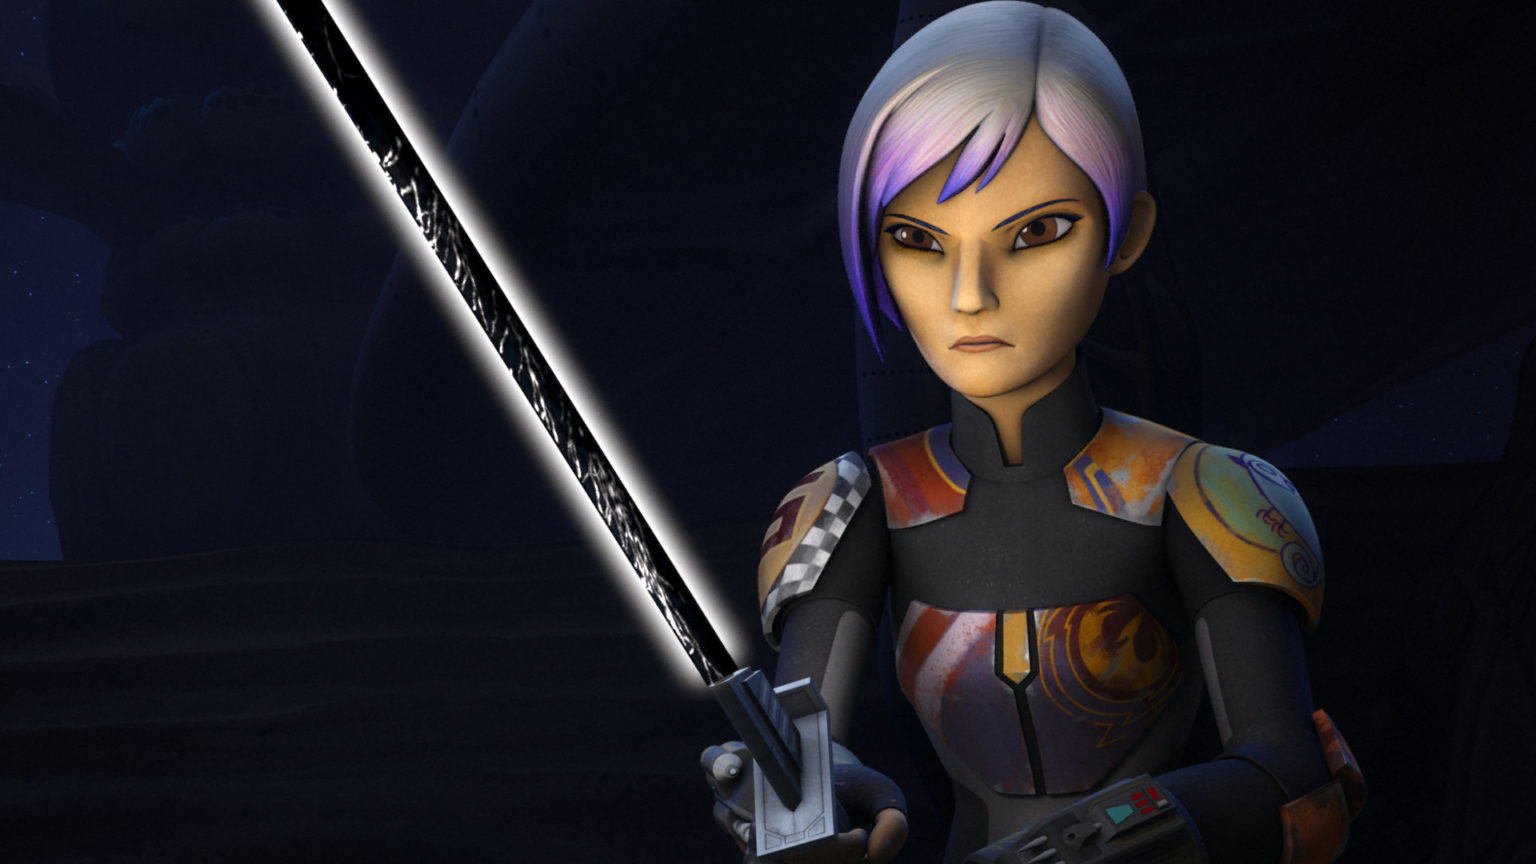 Sabine Holds the Darksaber in Star Wars Rebels